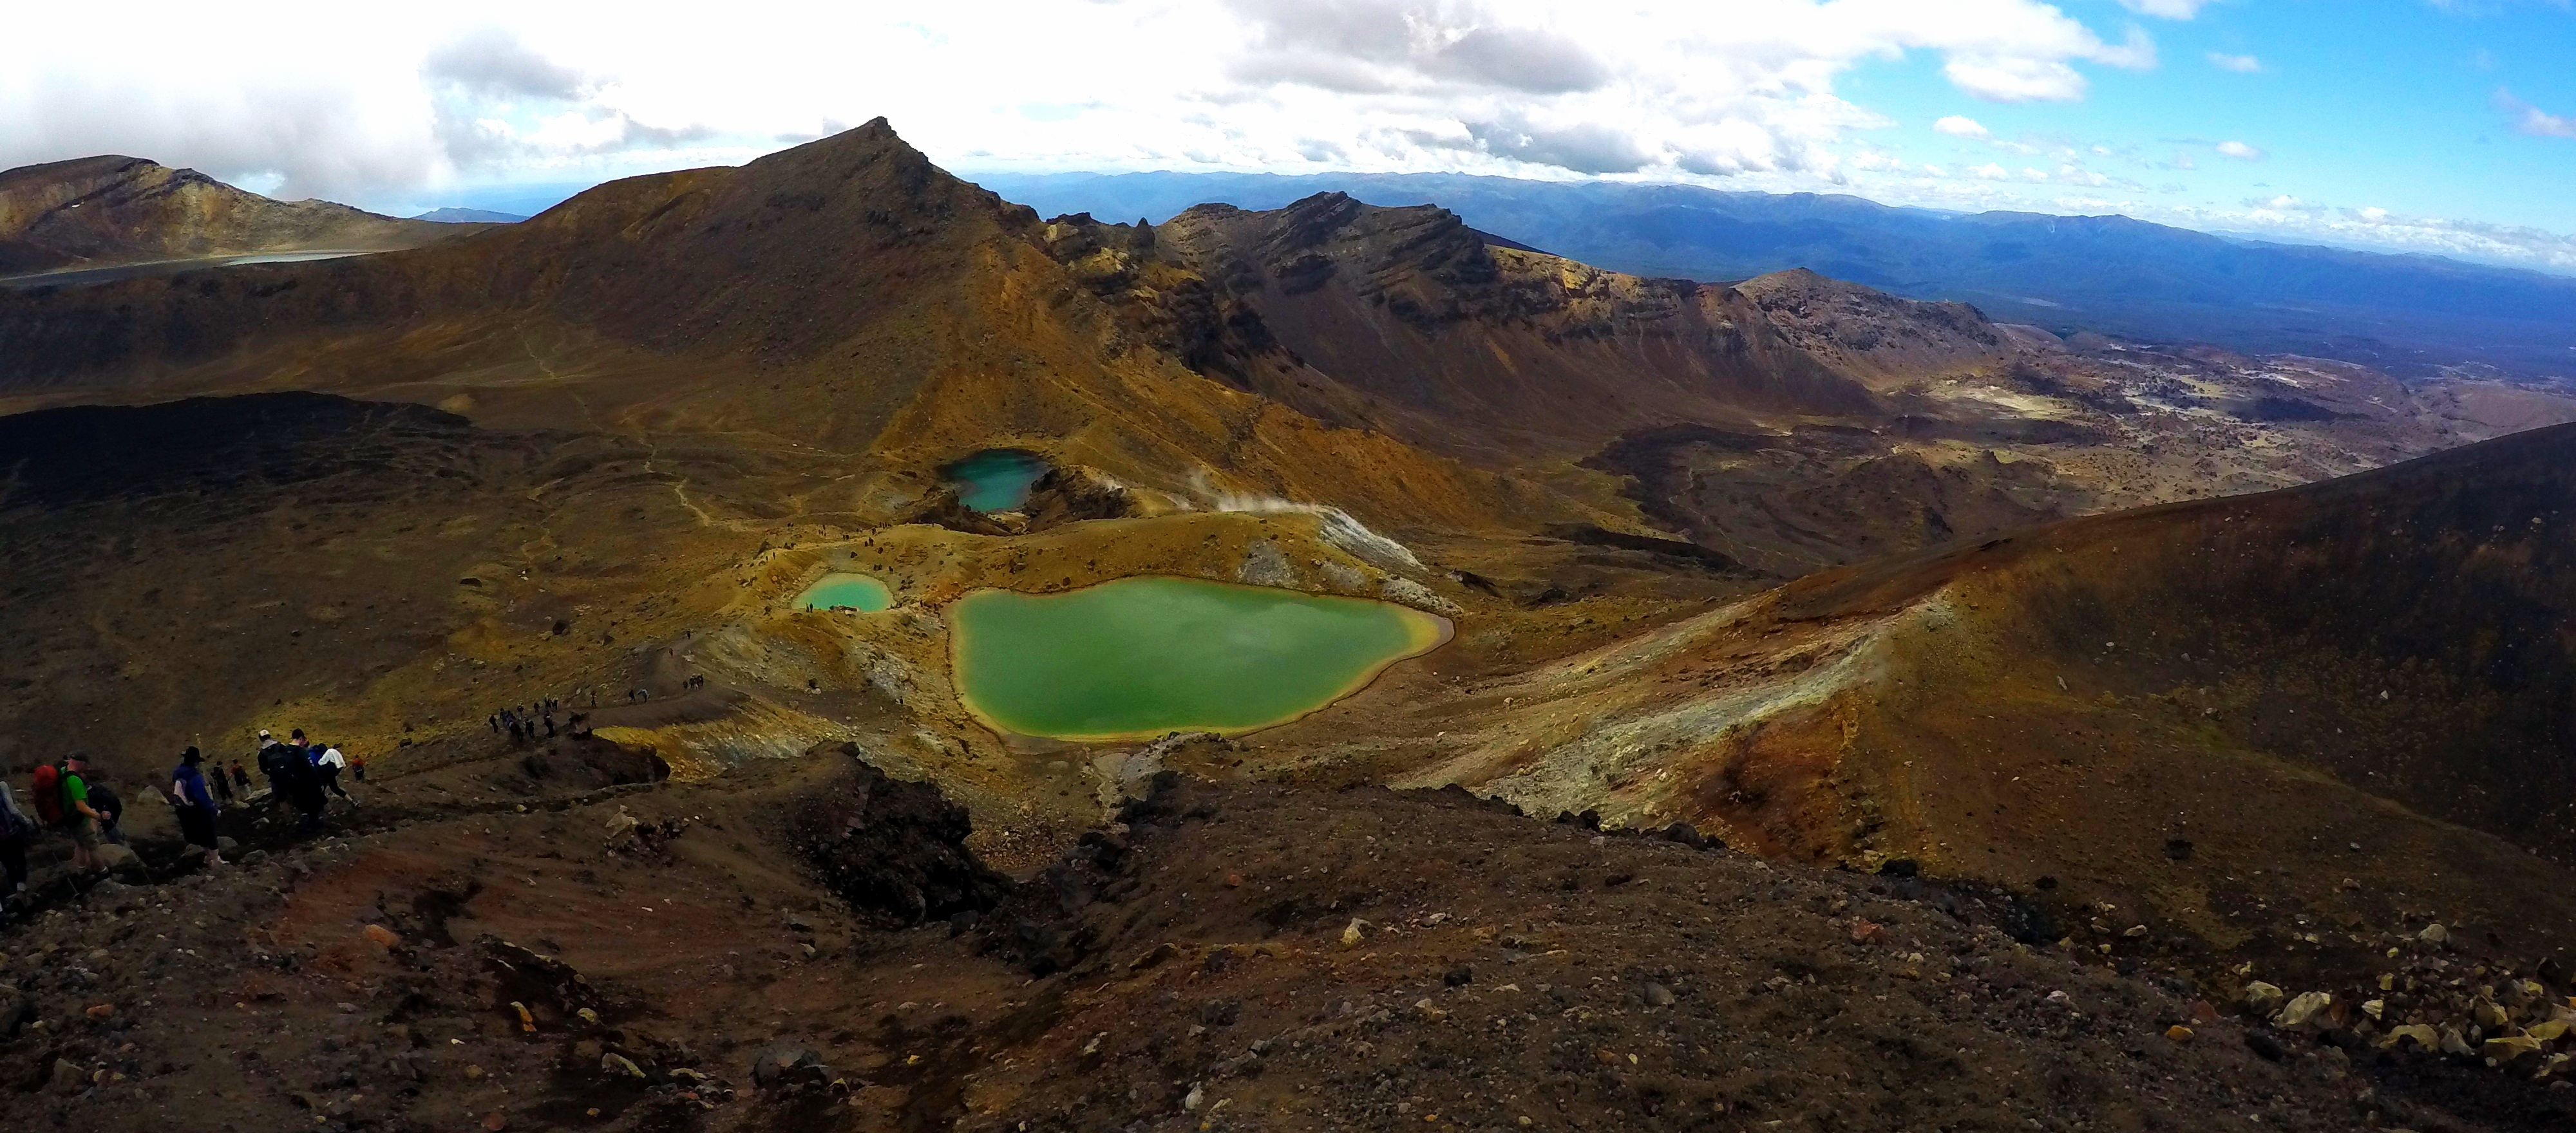 Hiking Trail: Tongariro Crossing, New Zealand